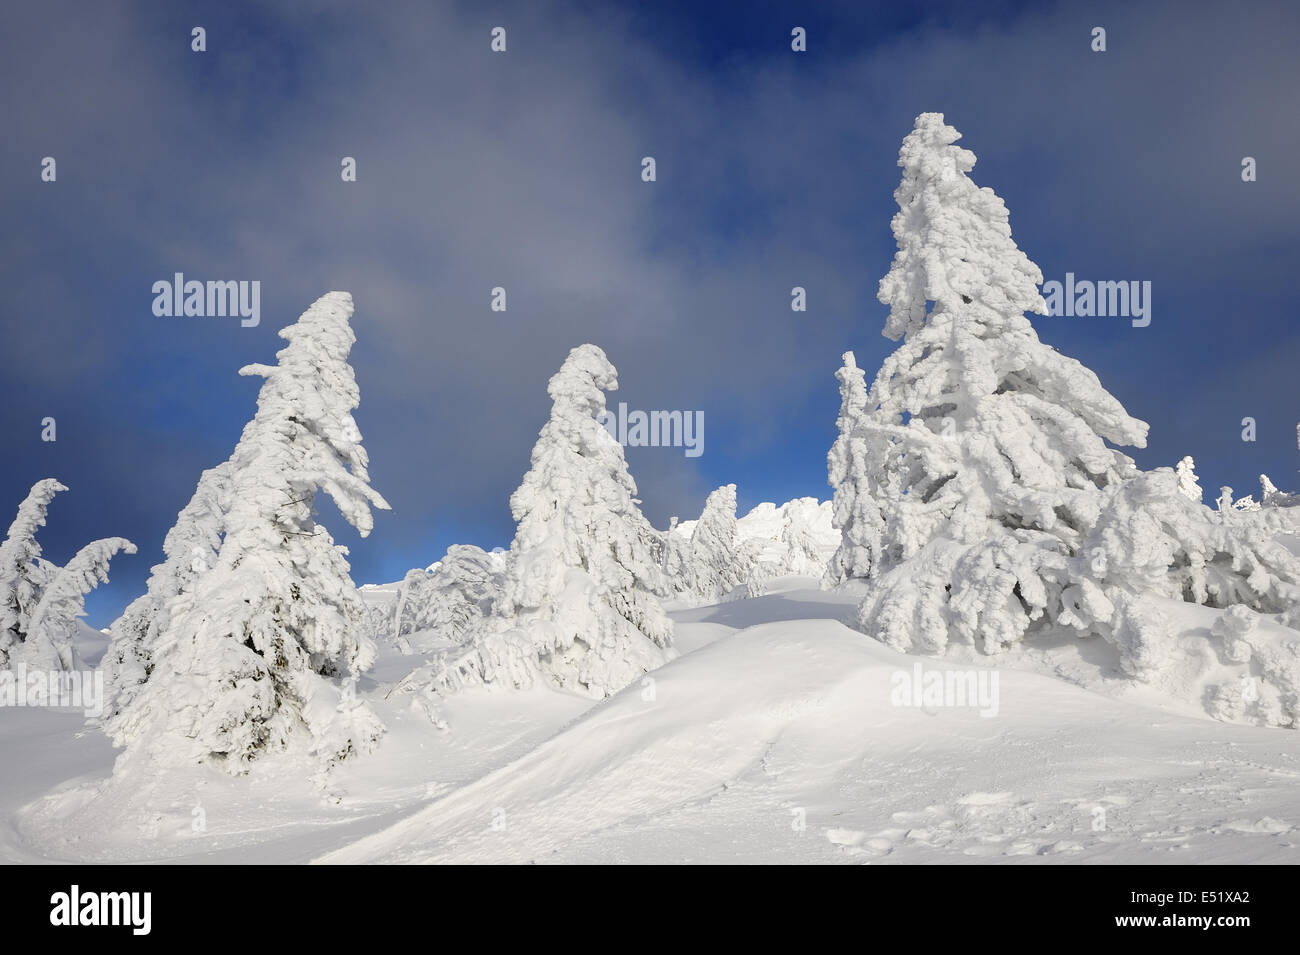 Snowy spruces, Bavaraia, Germany Stock Photo